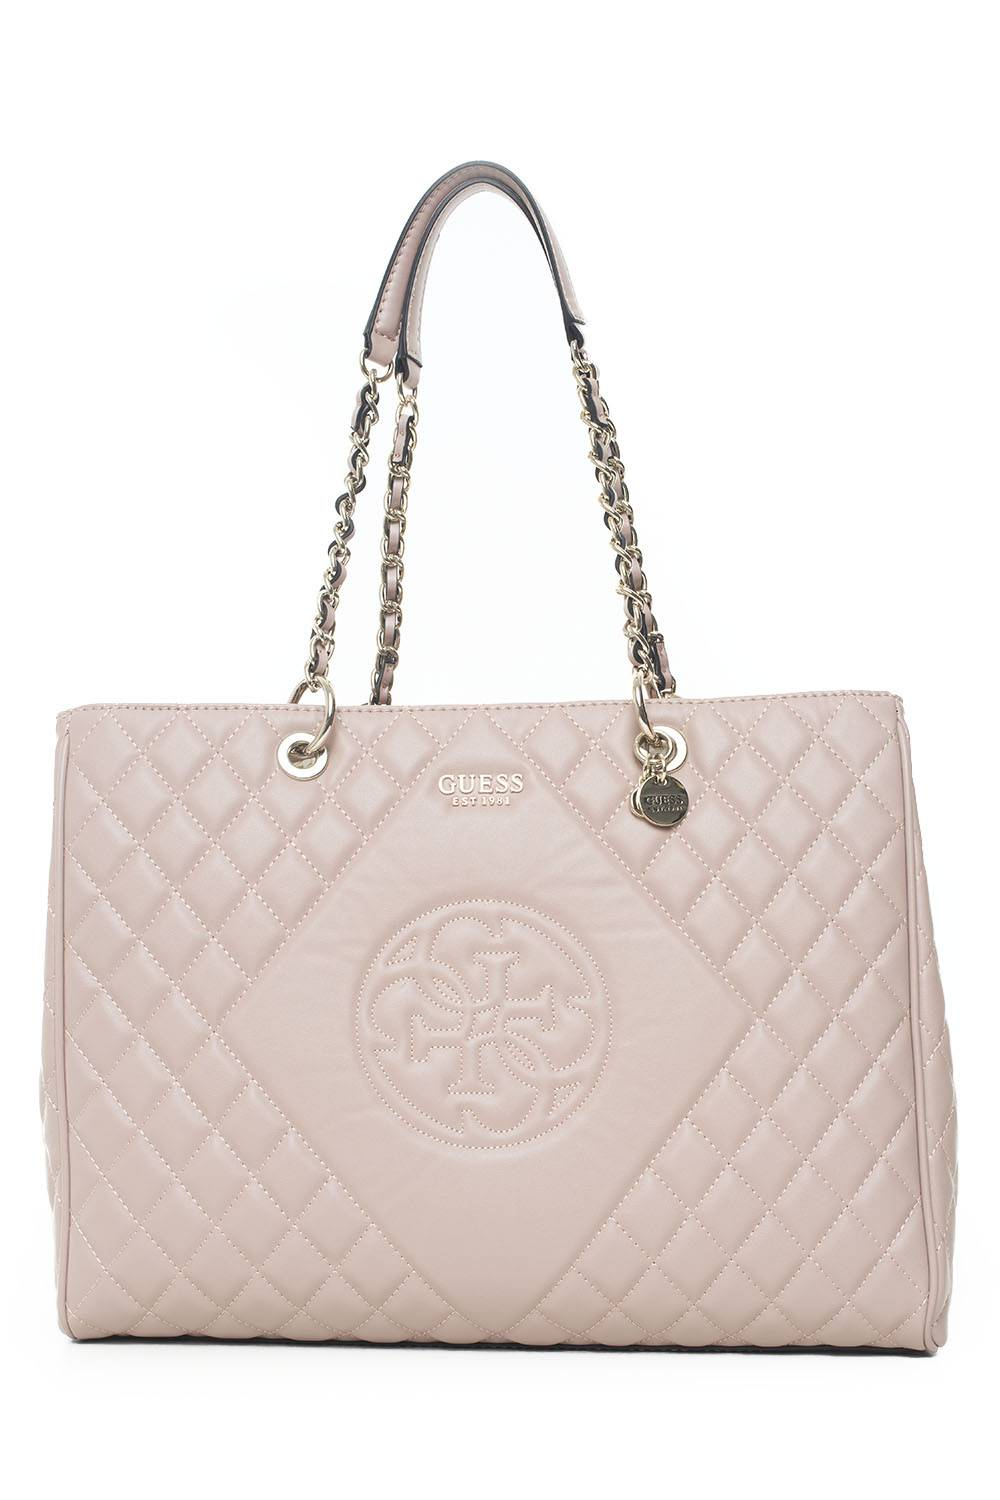 Guess Borsa a spalla sweet candy Rosa Poliestere Donna